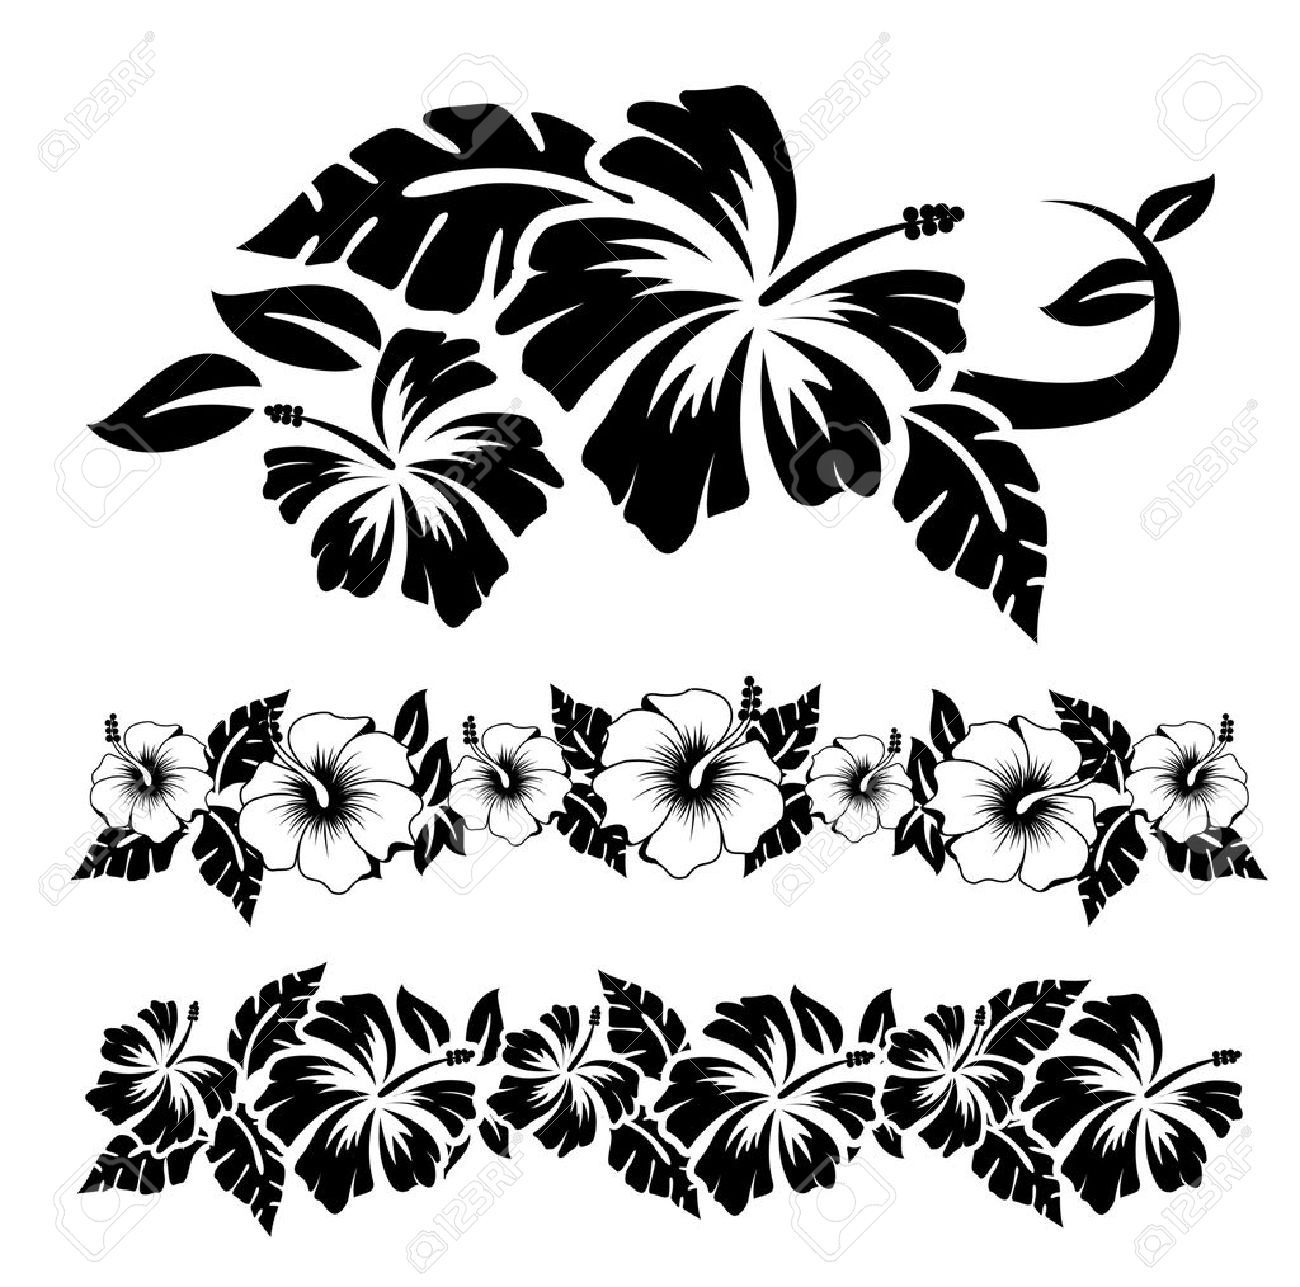 Pin By Anett Sik On Black And White Pinterest Stencils Flowers